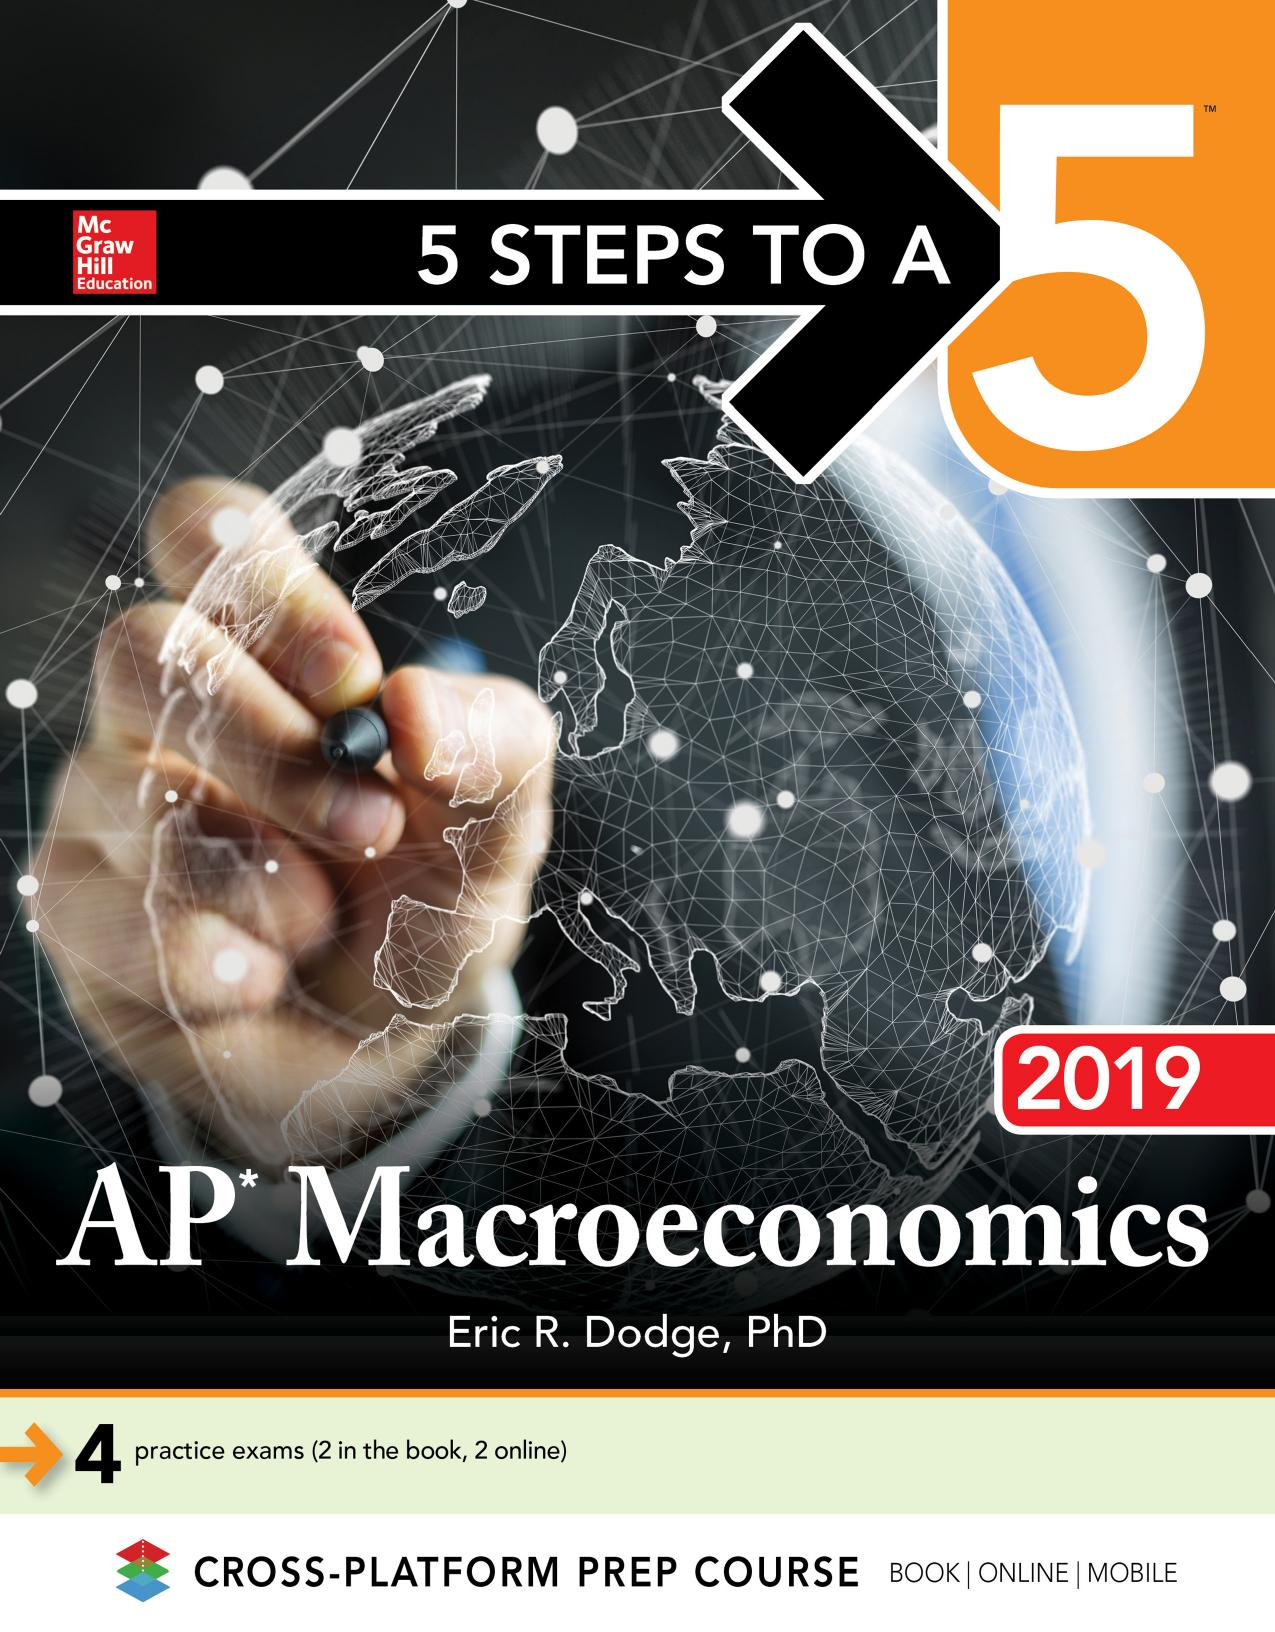 5 Steps to a 5: AP Macroeconomics 2019 1st Edition Pdf Free Download